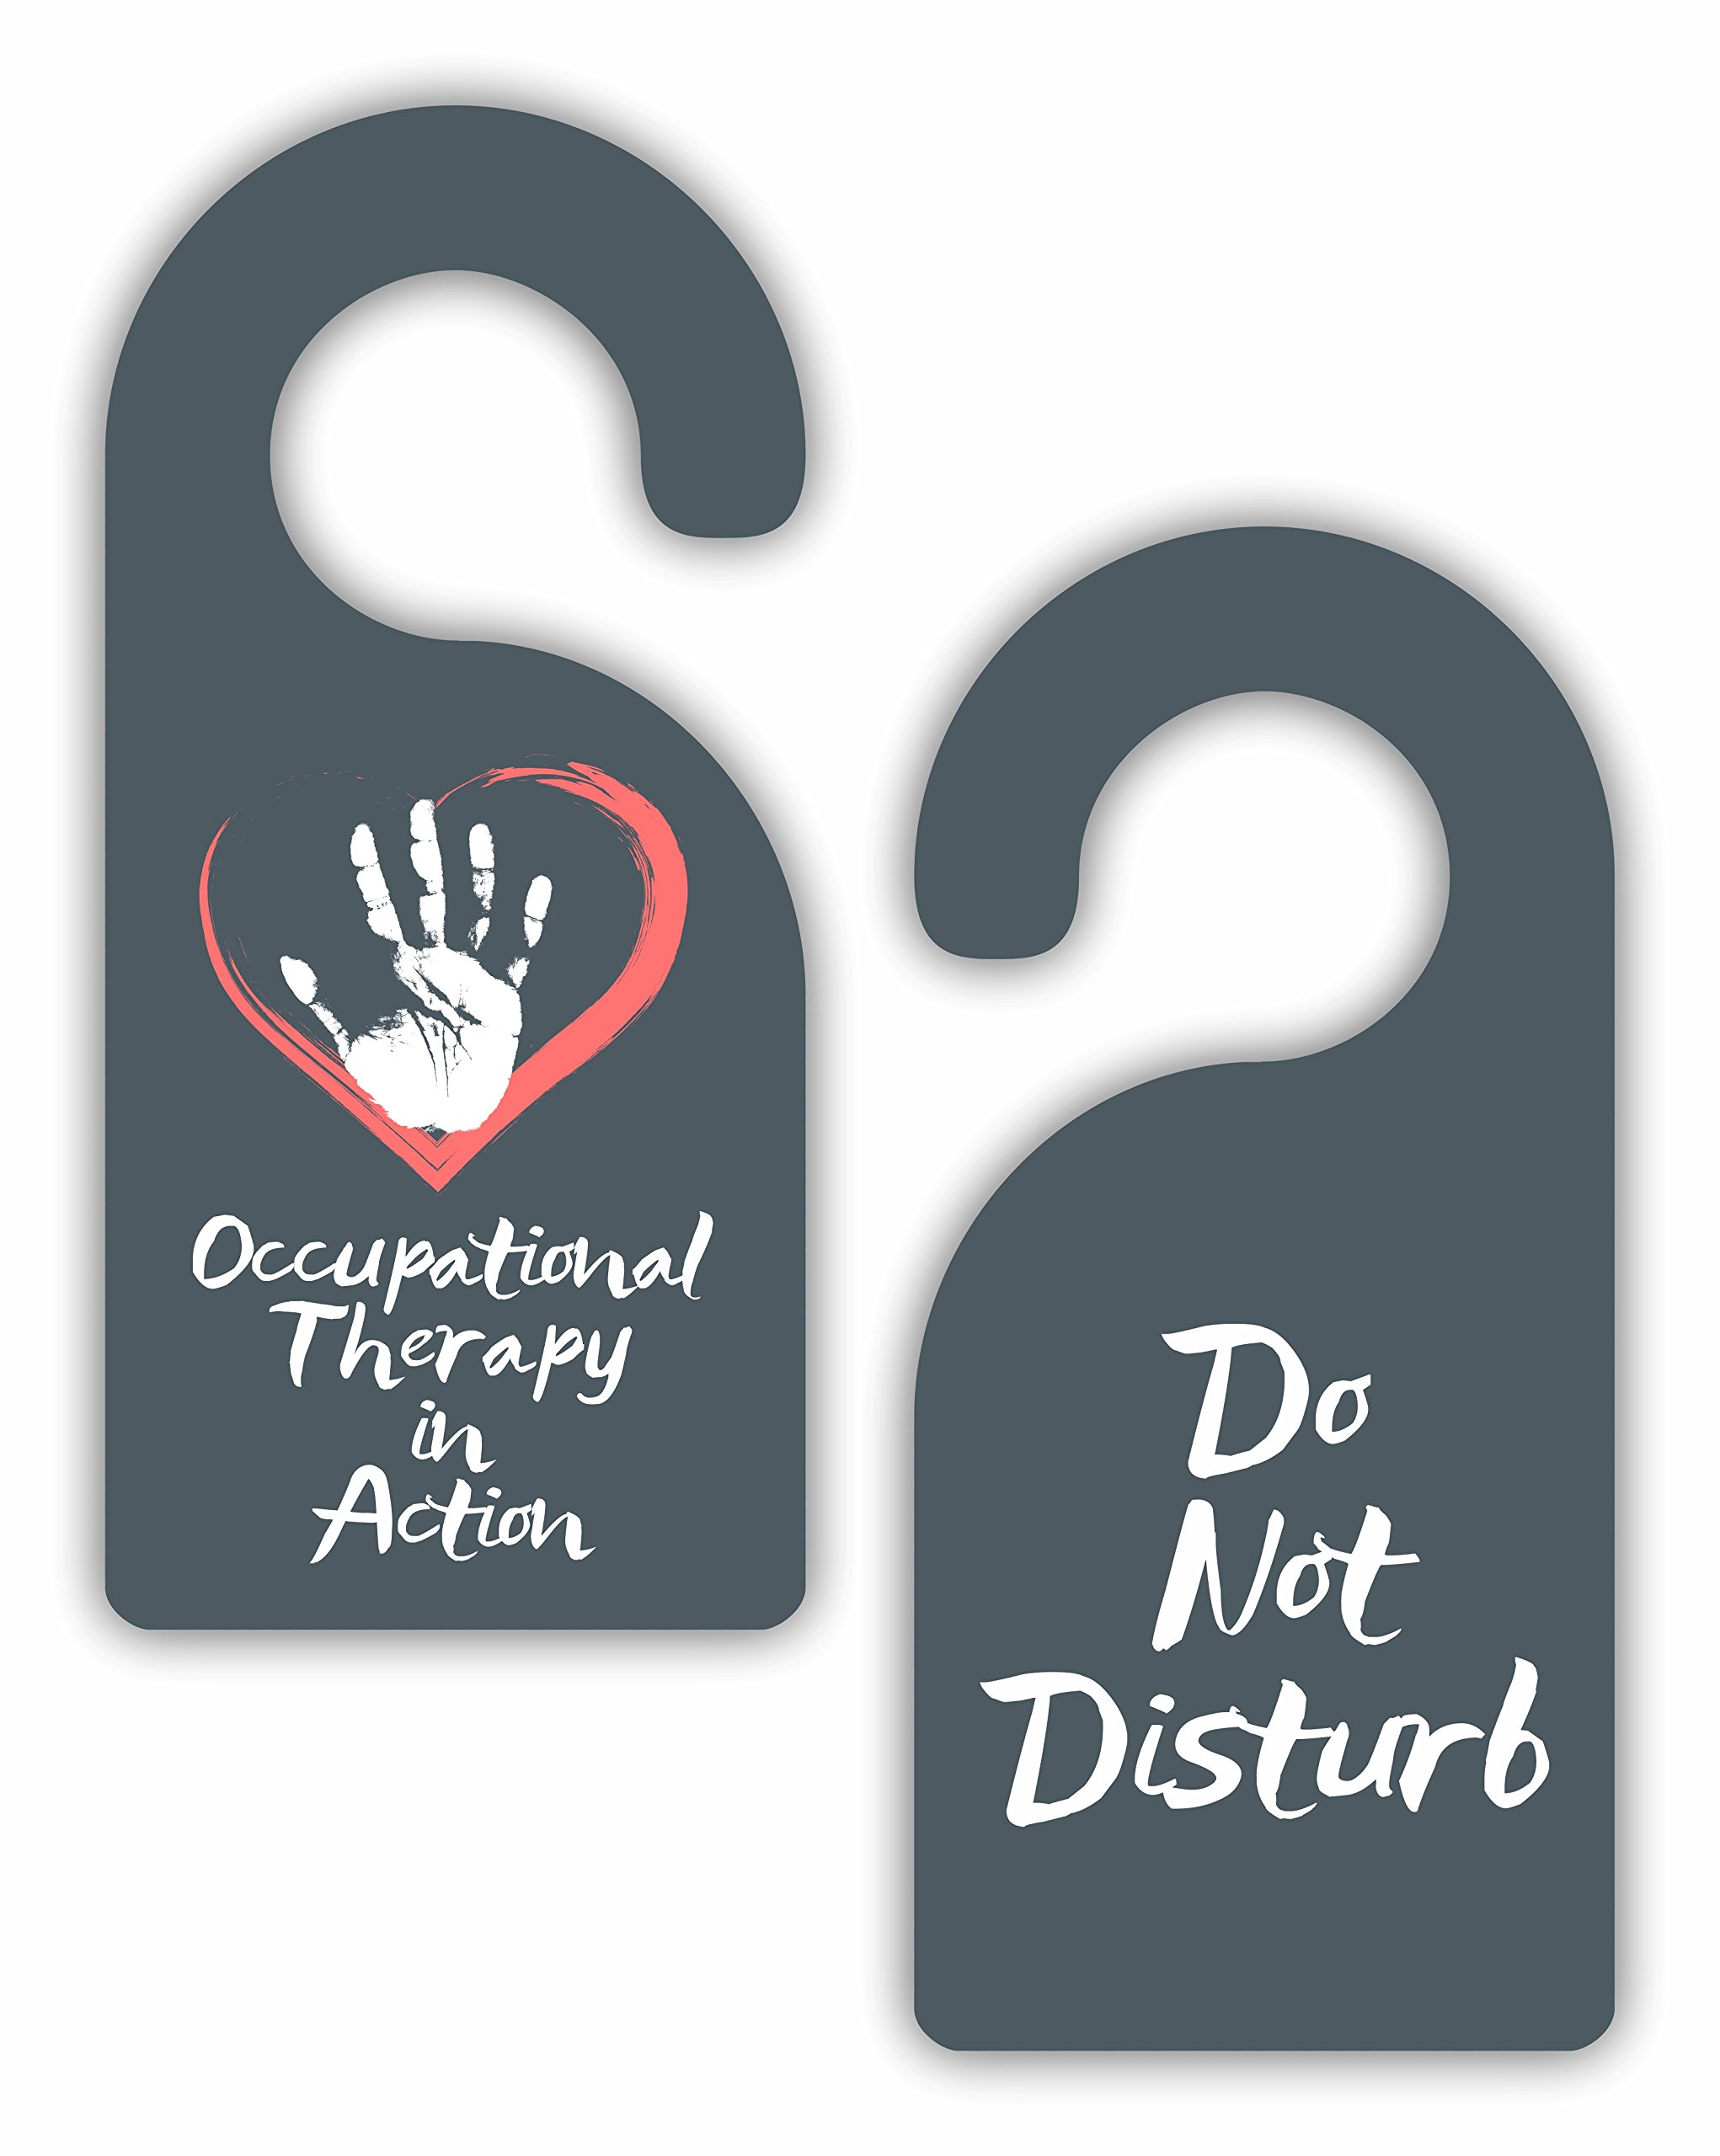 Occupational Therapy in Action/Do Not Disturb - Therapist - Double-Sided Hard Plastic Glossy Door Hanger